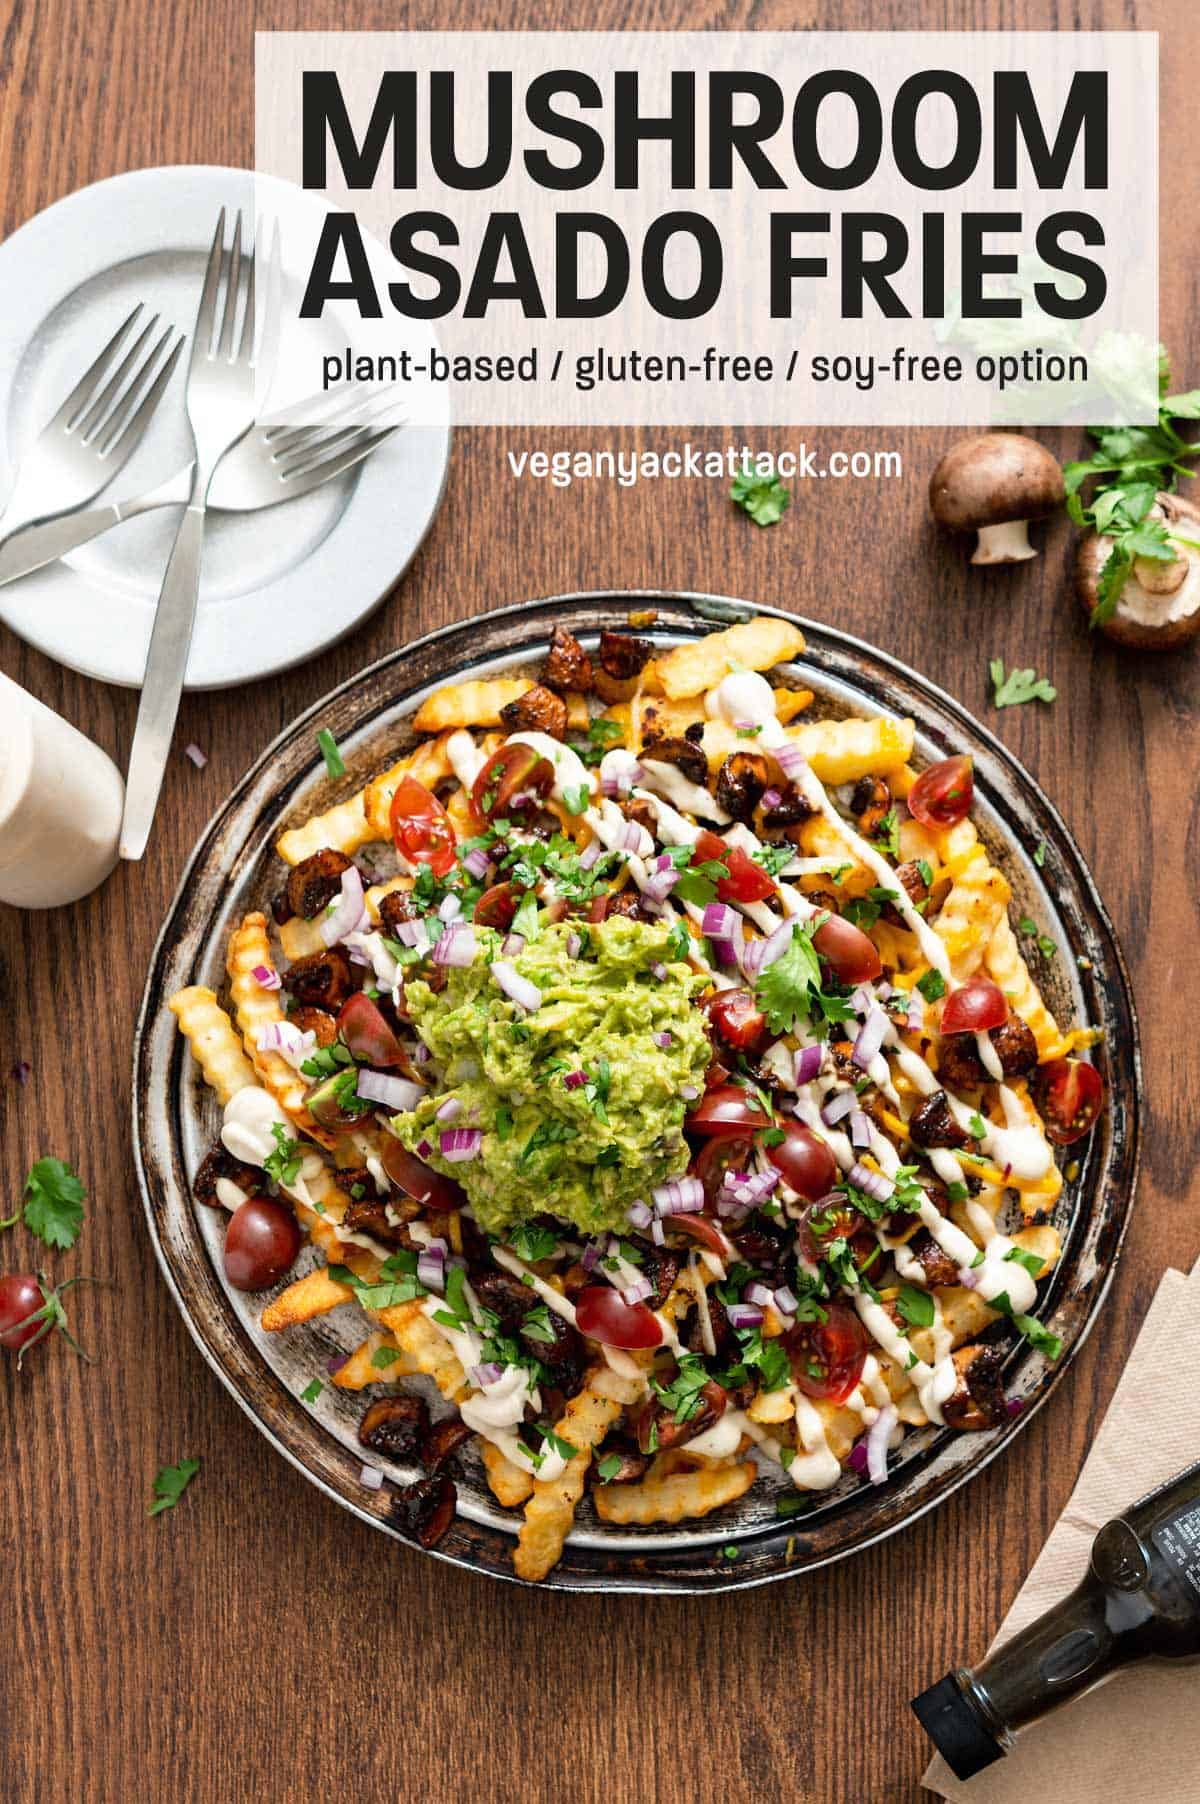 Platter of vegan mushroom asado fries on a wood table, with plates and forks